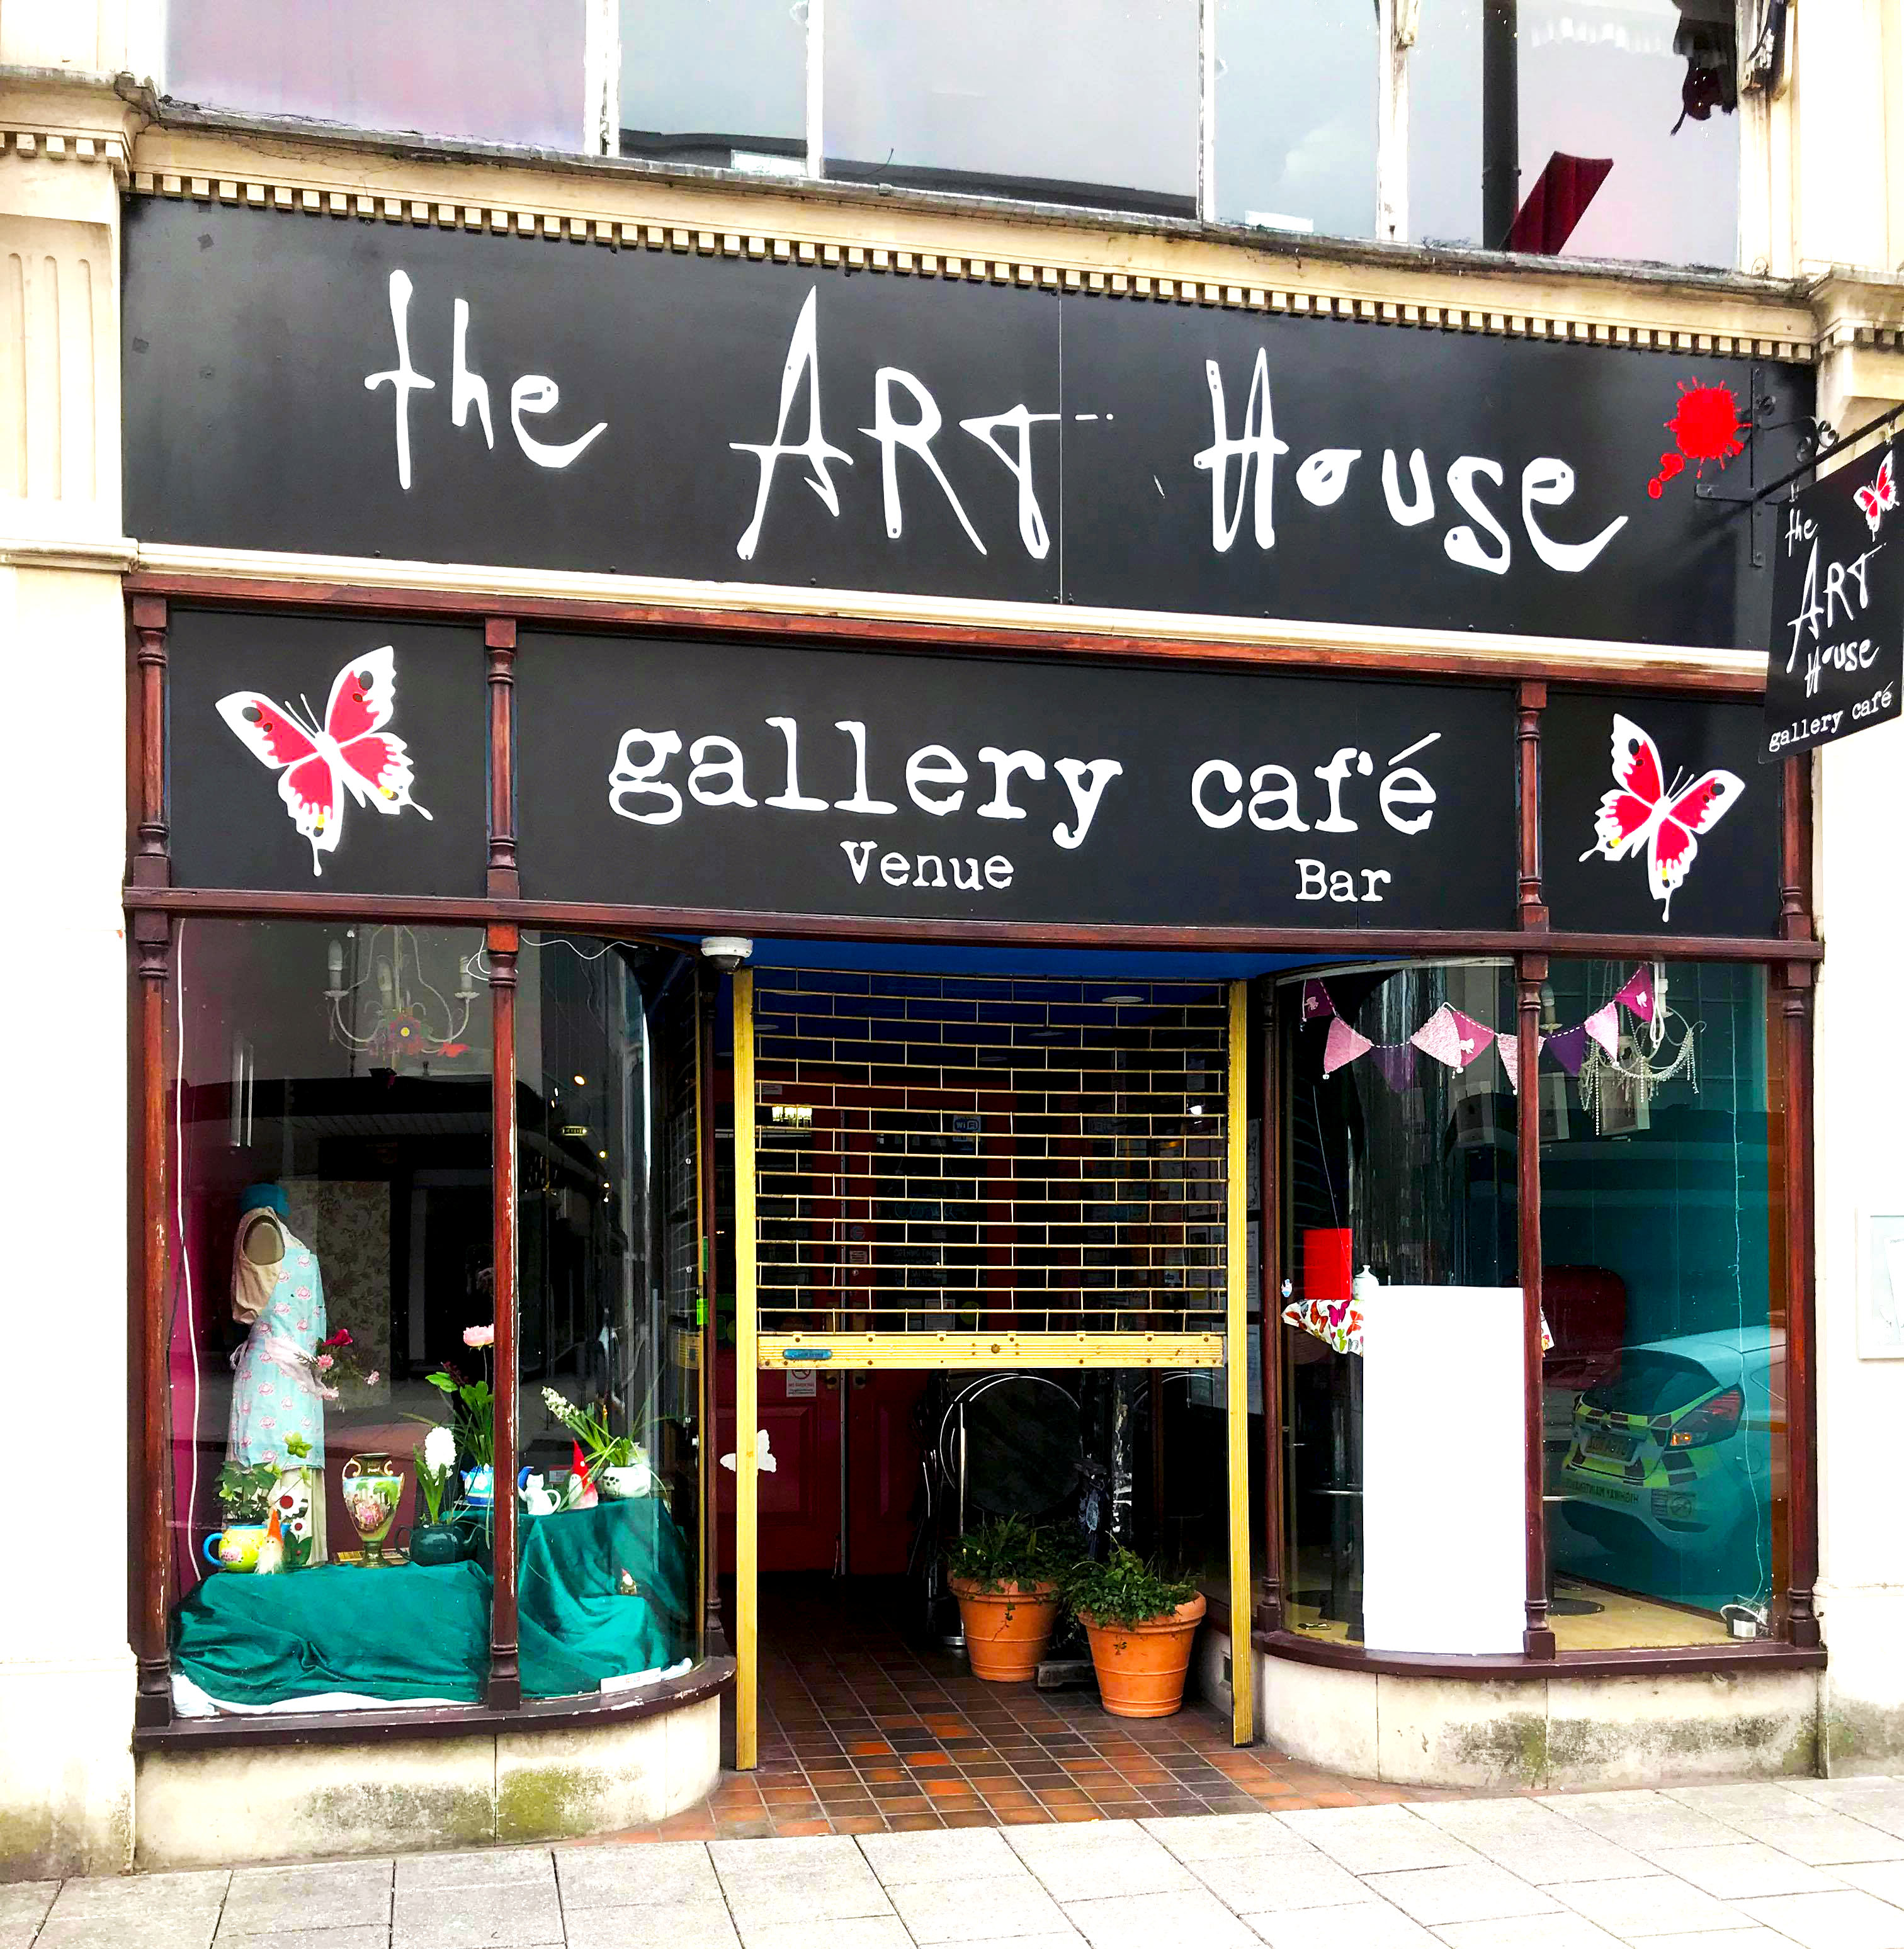 The venue for the poetry competition will be at the Art House Cafe.